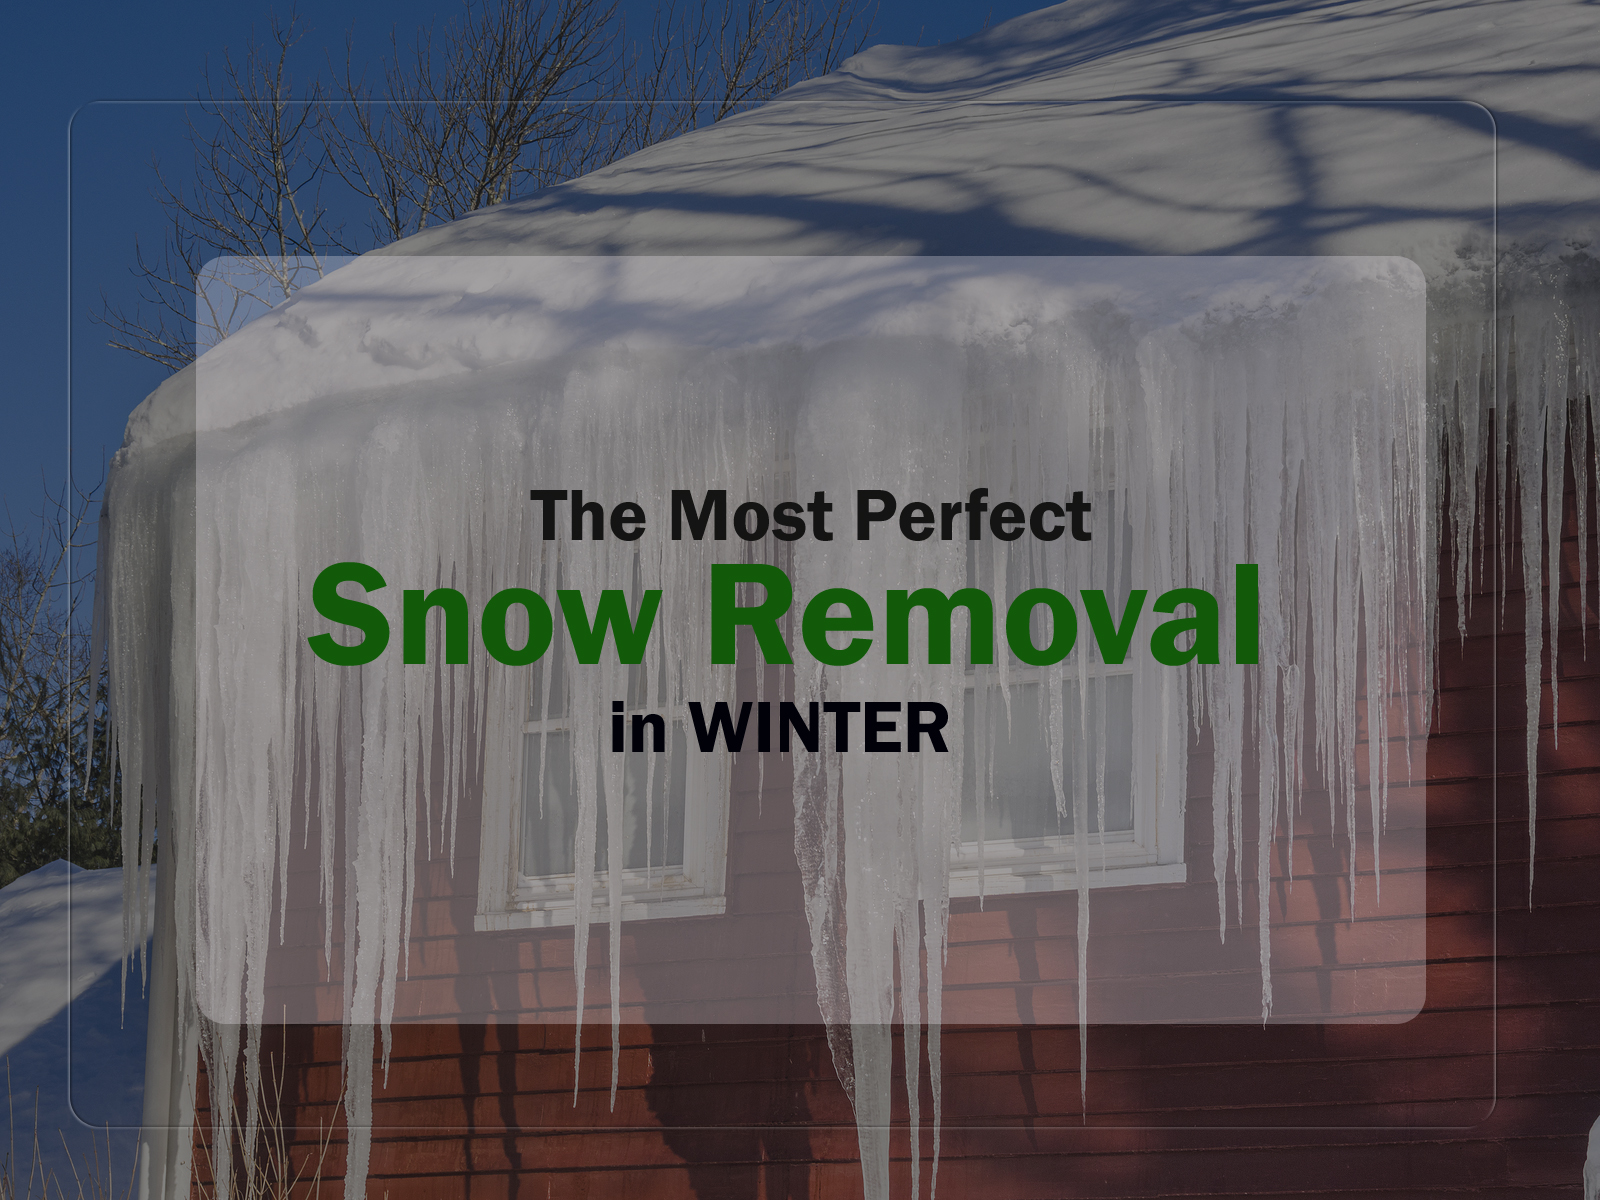 Best Steps for the Most Perfect Snow Removal in Winter